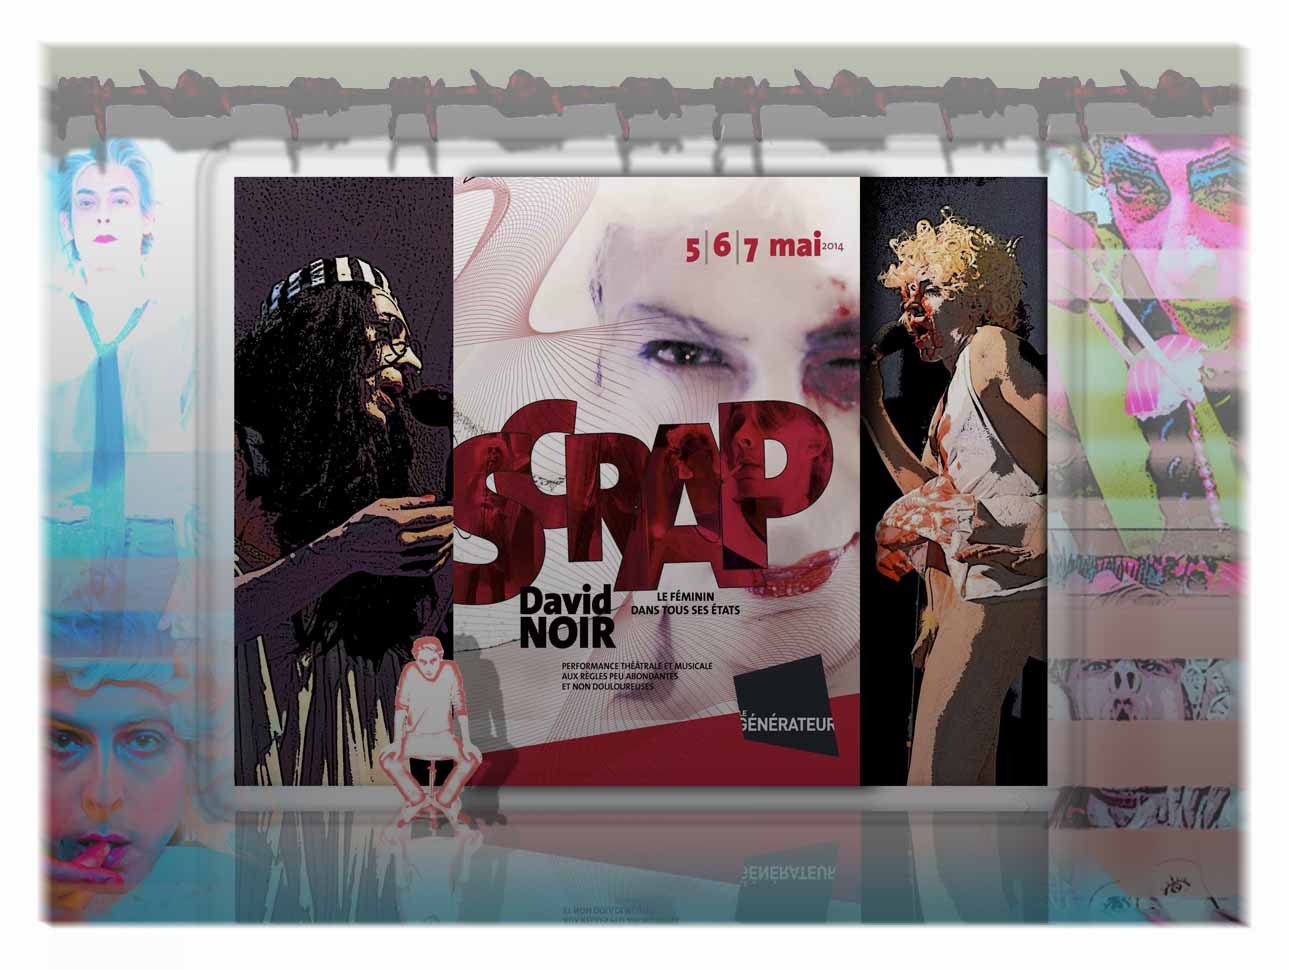 """SCRAP"" - Performance de David Noir et Christophe Imbs"